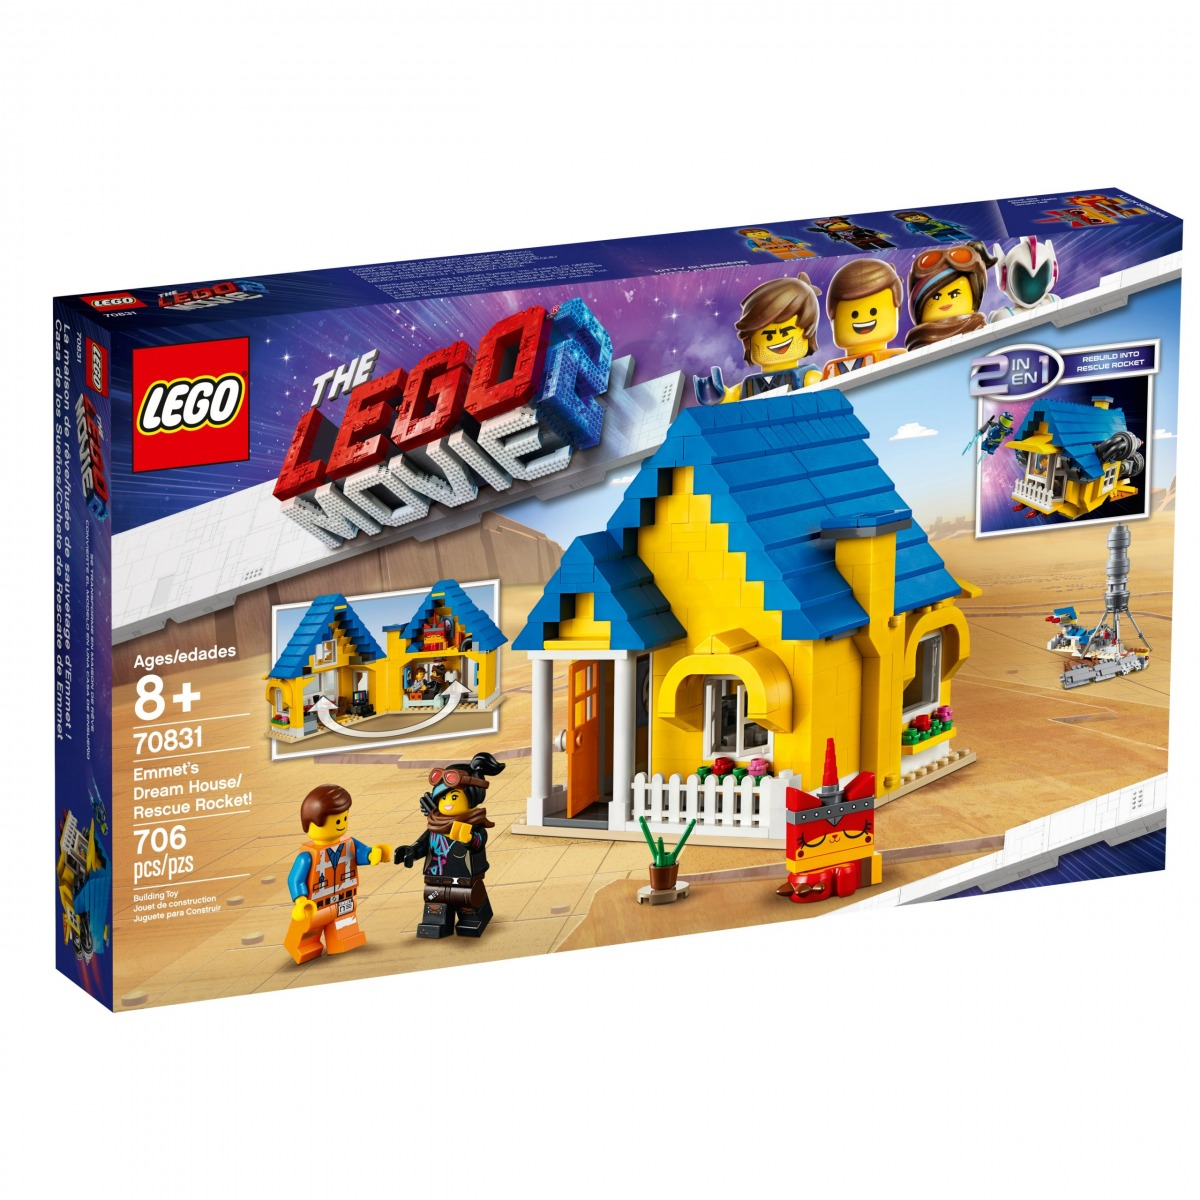 lego 70831 emmets dream house rescue rocket scaled